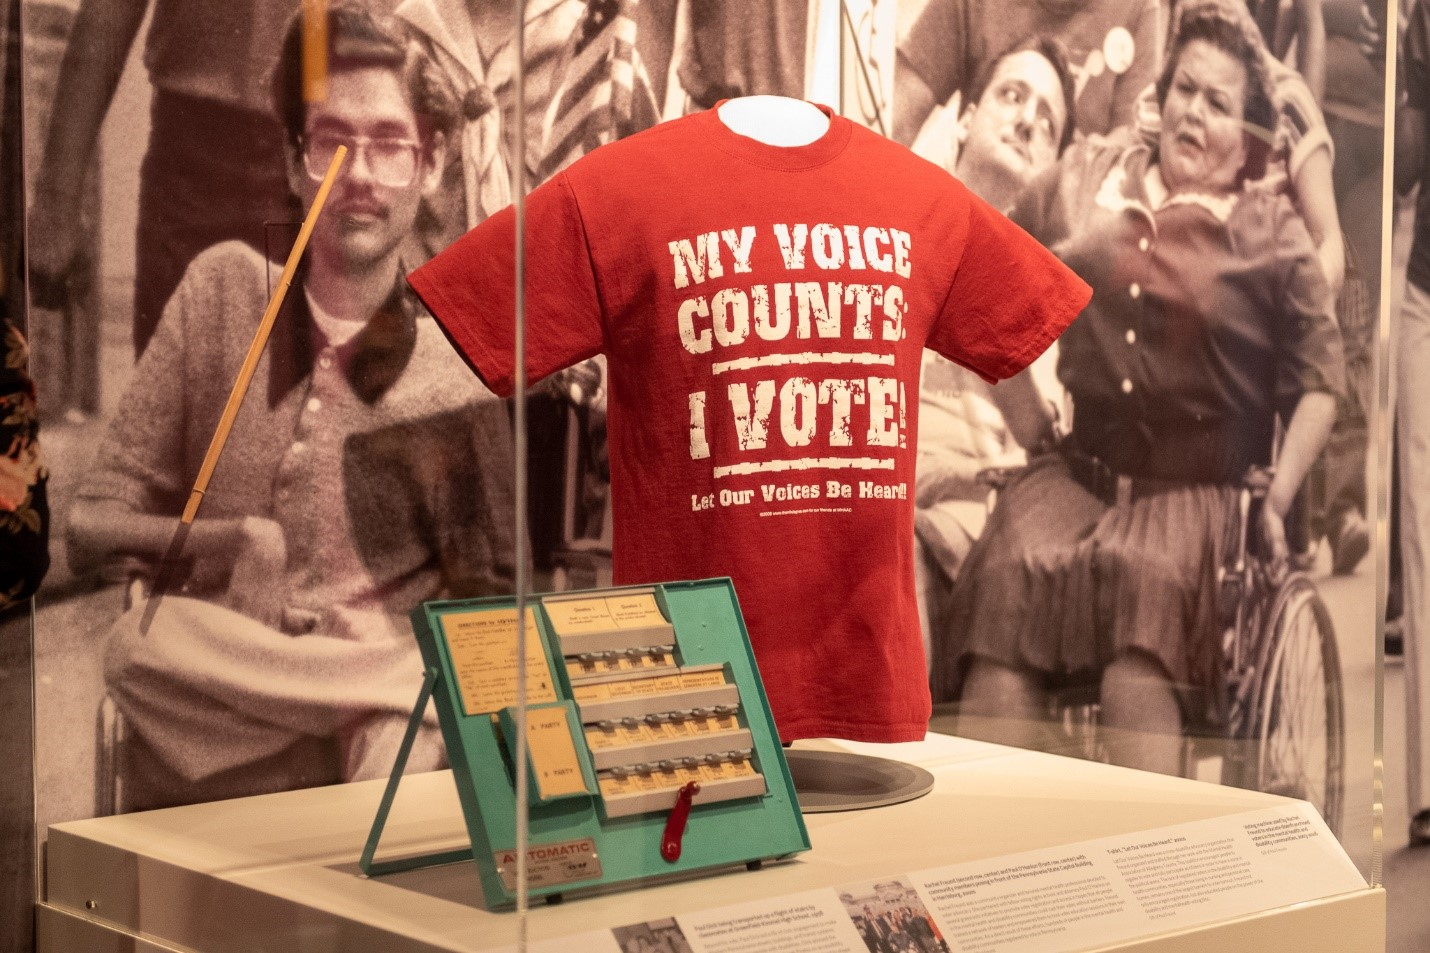 Photos, a t shirt, and other antique looking exhibit items